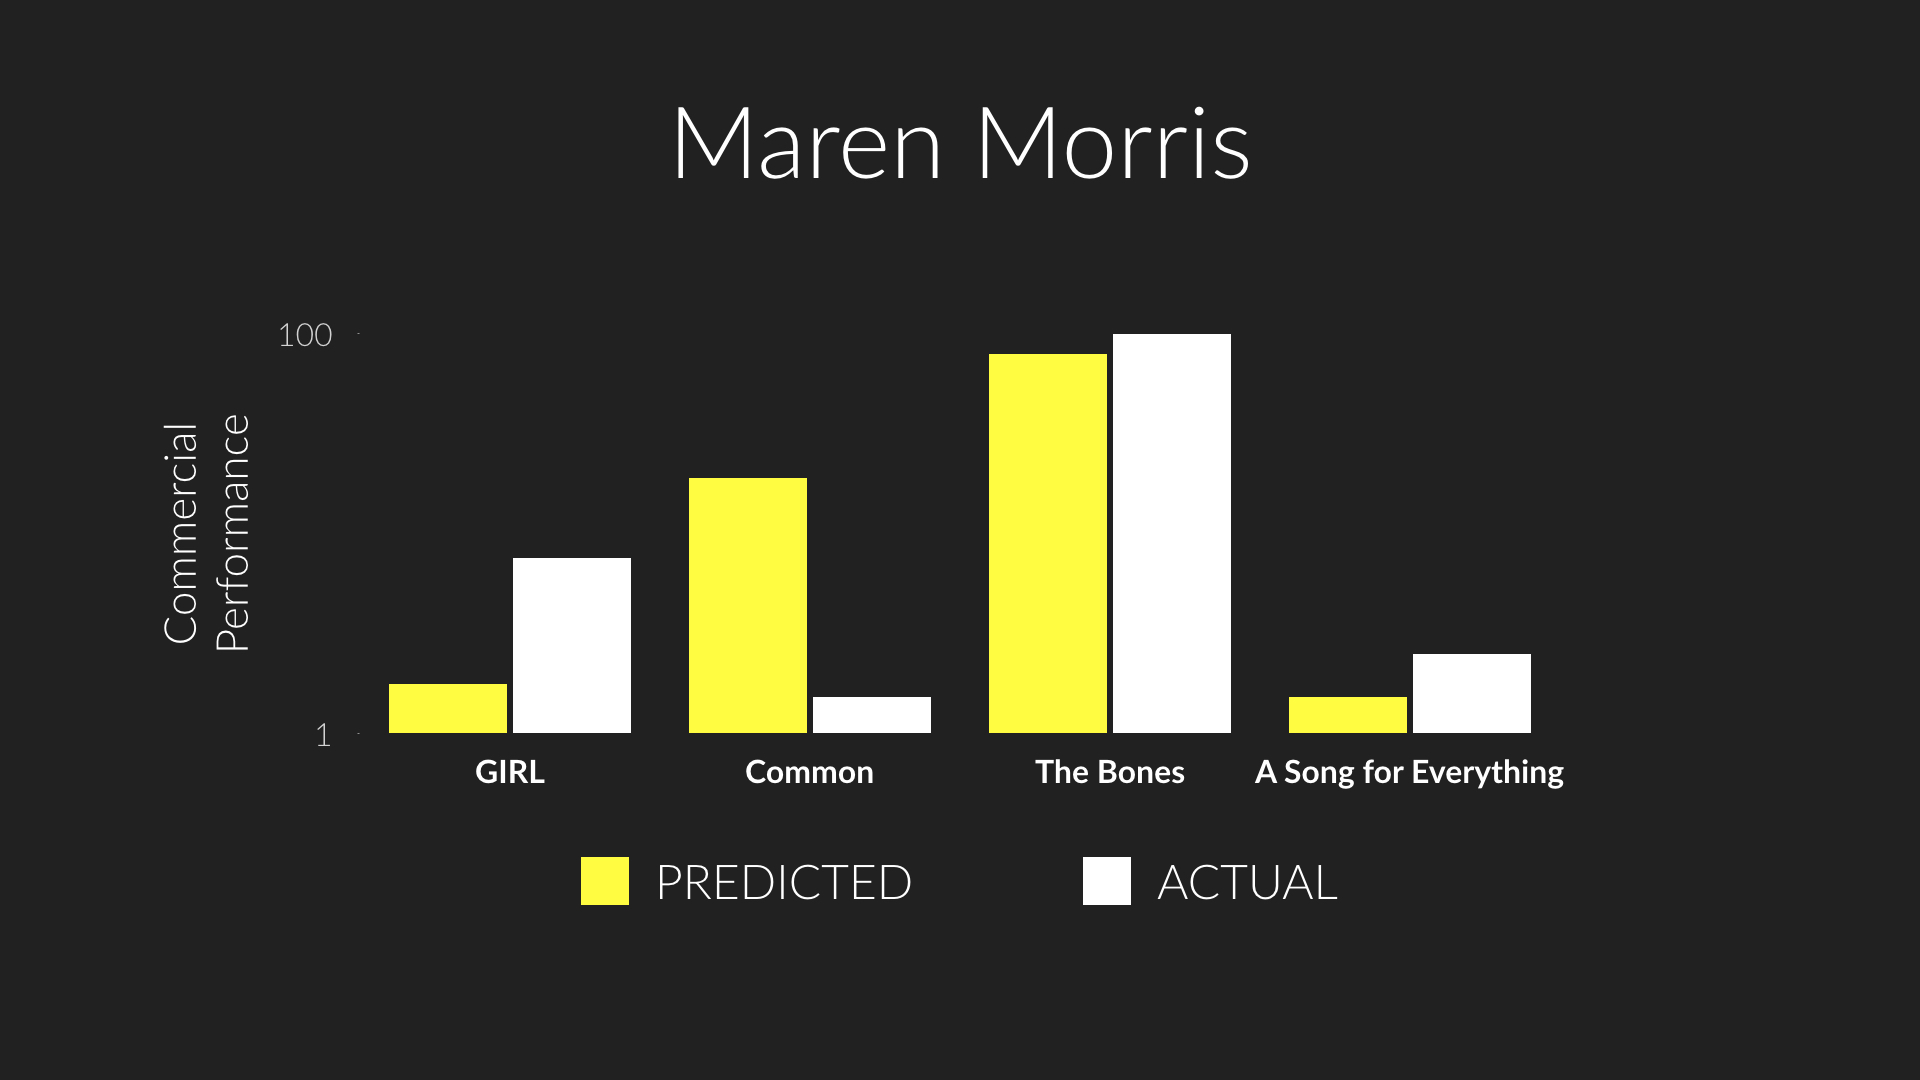 Predicted versus actual performance of  GIRL ,  Common ,  The Bones , and  A Song for Everything , four tracks by Maren Morries that appeared on New Music Friday in Q1 2019.